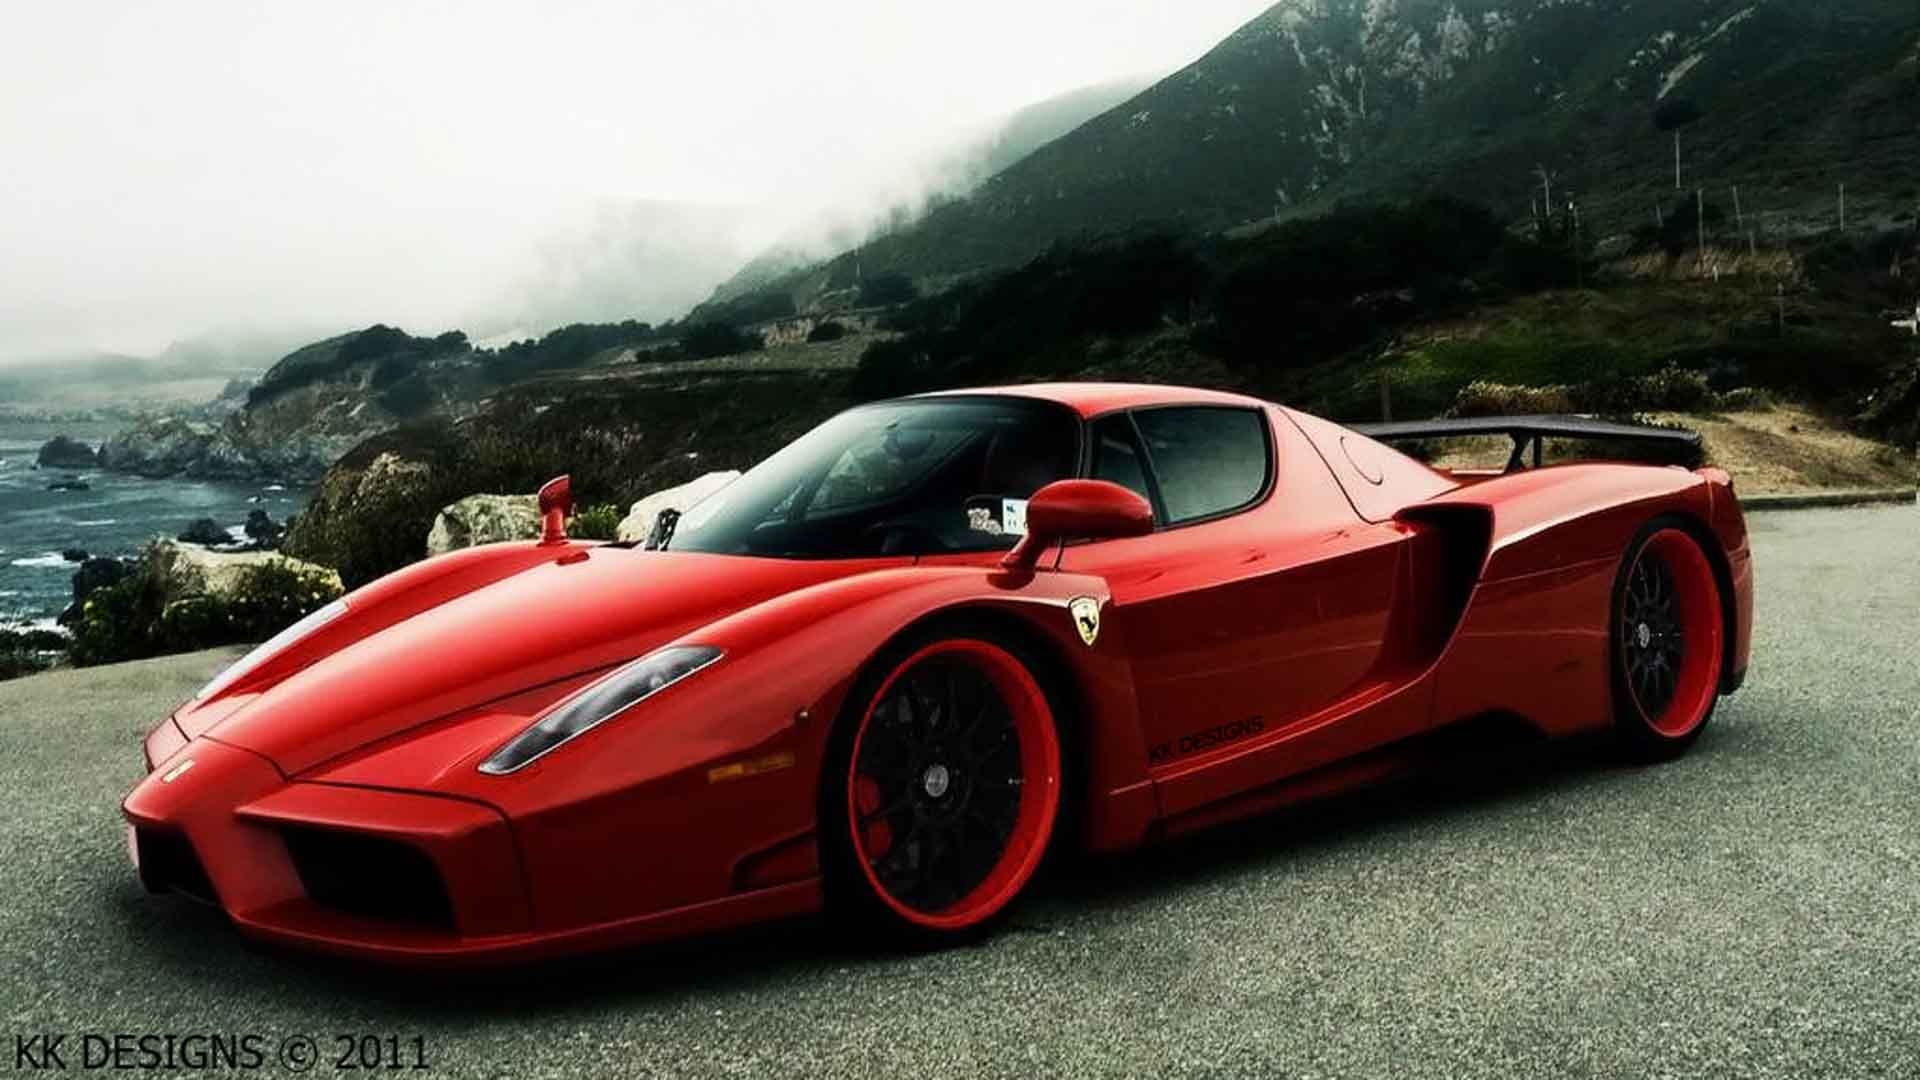 Best Collection Of Ferrari Exotic Car Wallpapers   SA Wallpapers 1920x1080